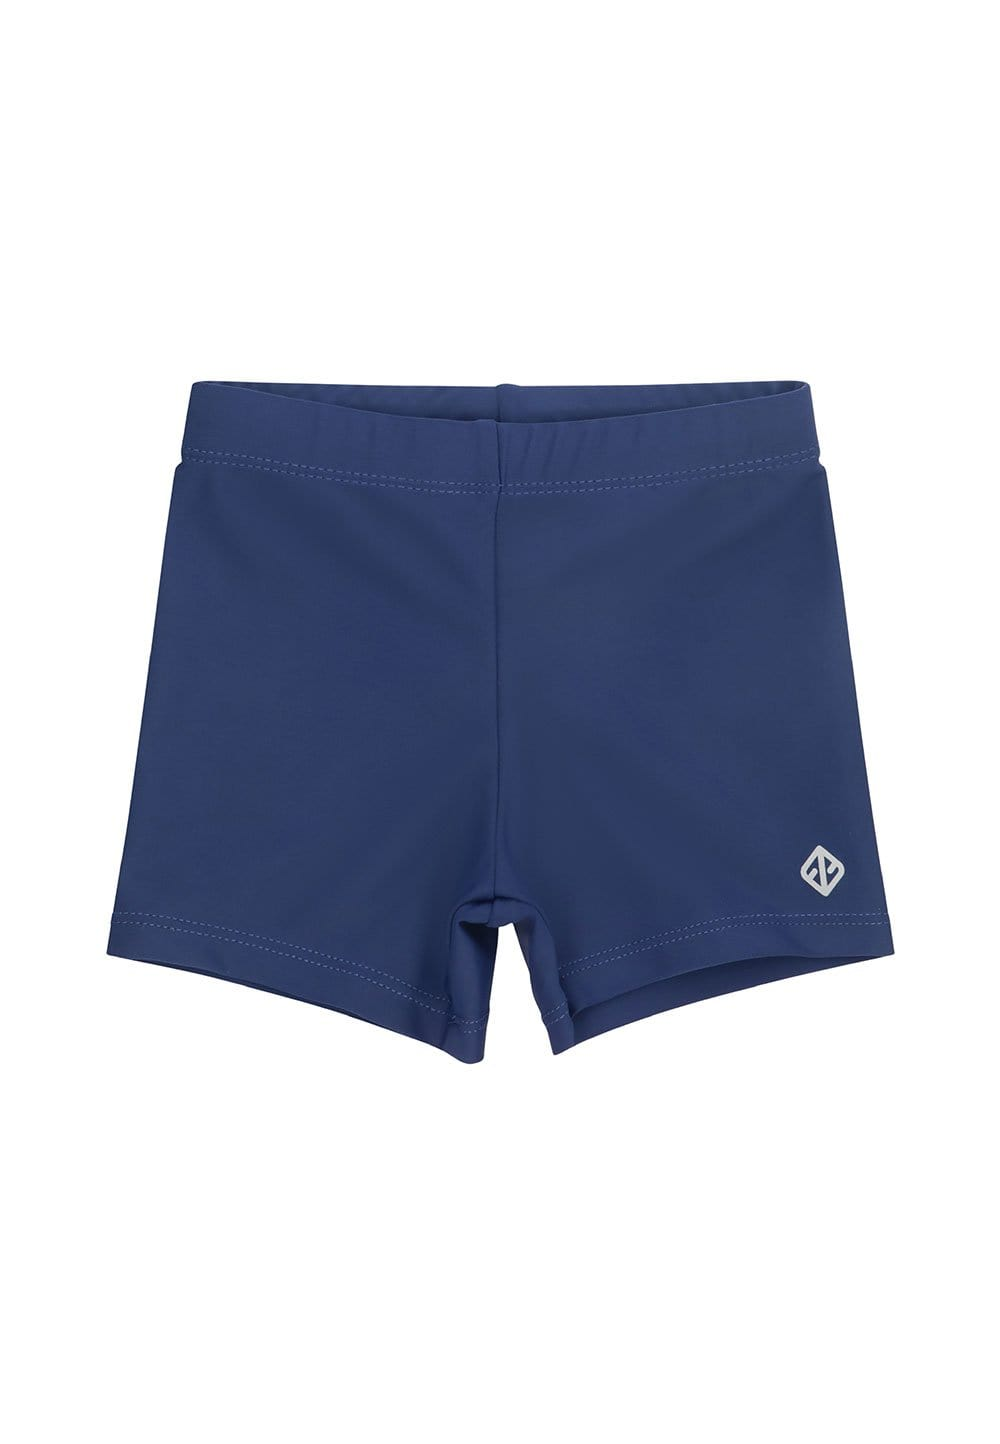 UPF50+ Junior Bottom (Unisex) in Navy